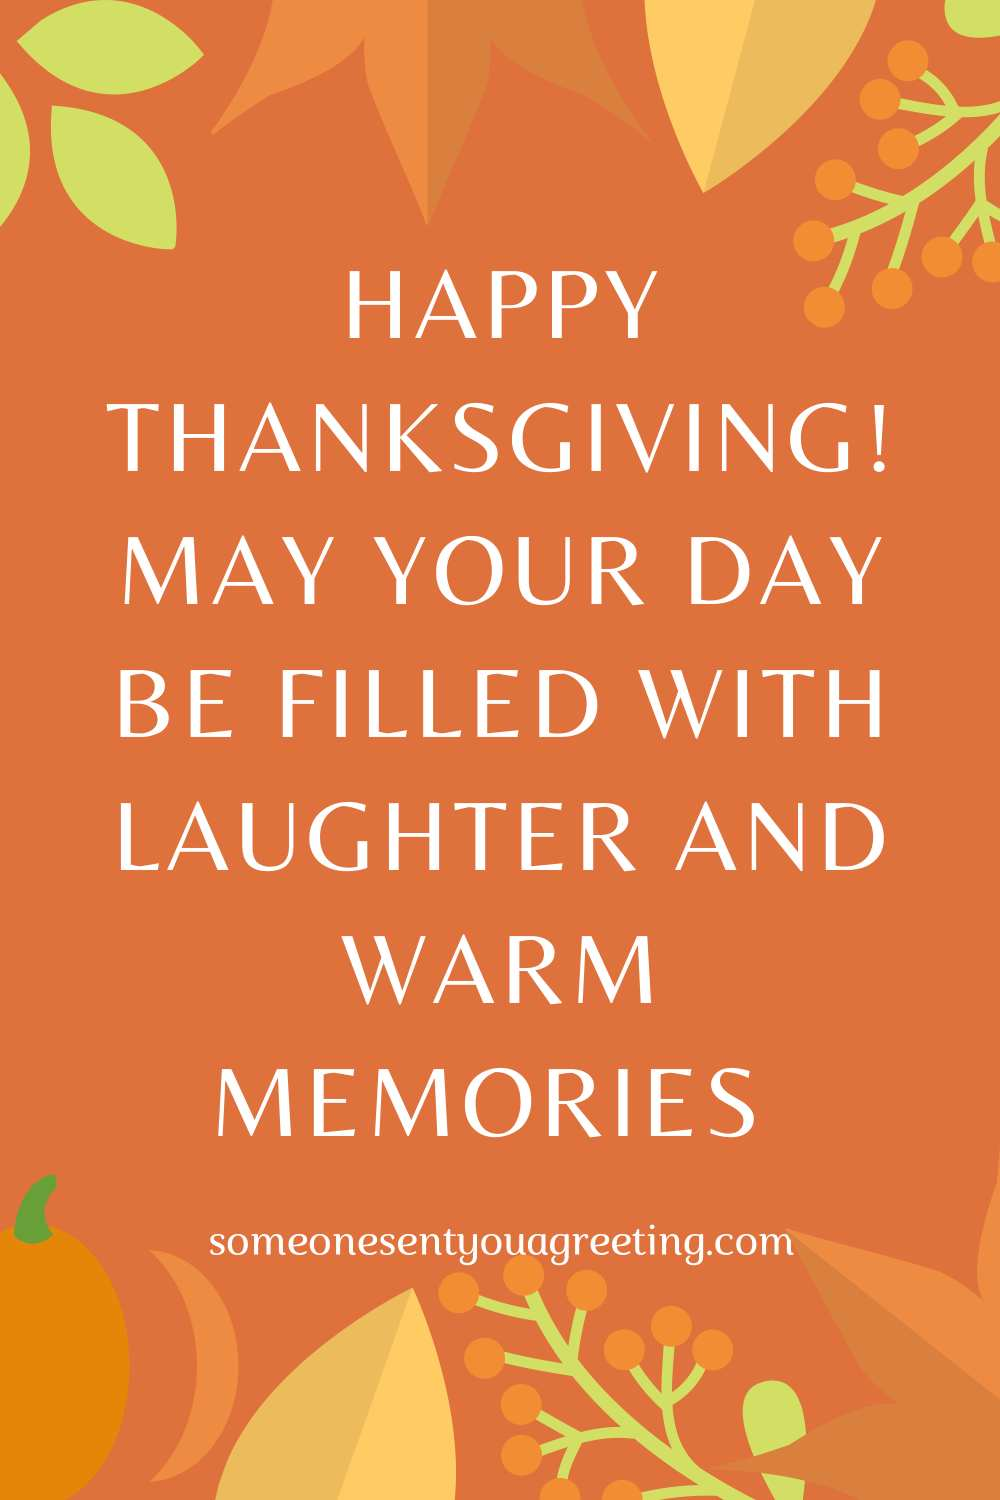 thanksgiving greetings for coworkers